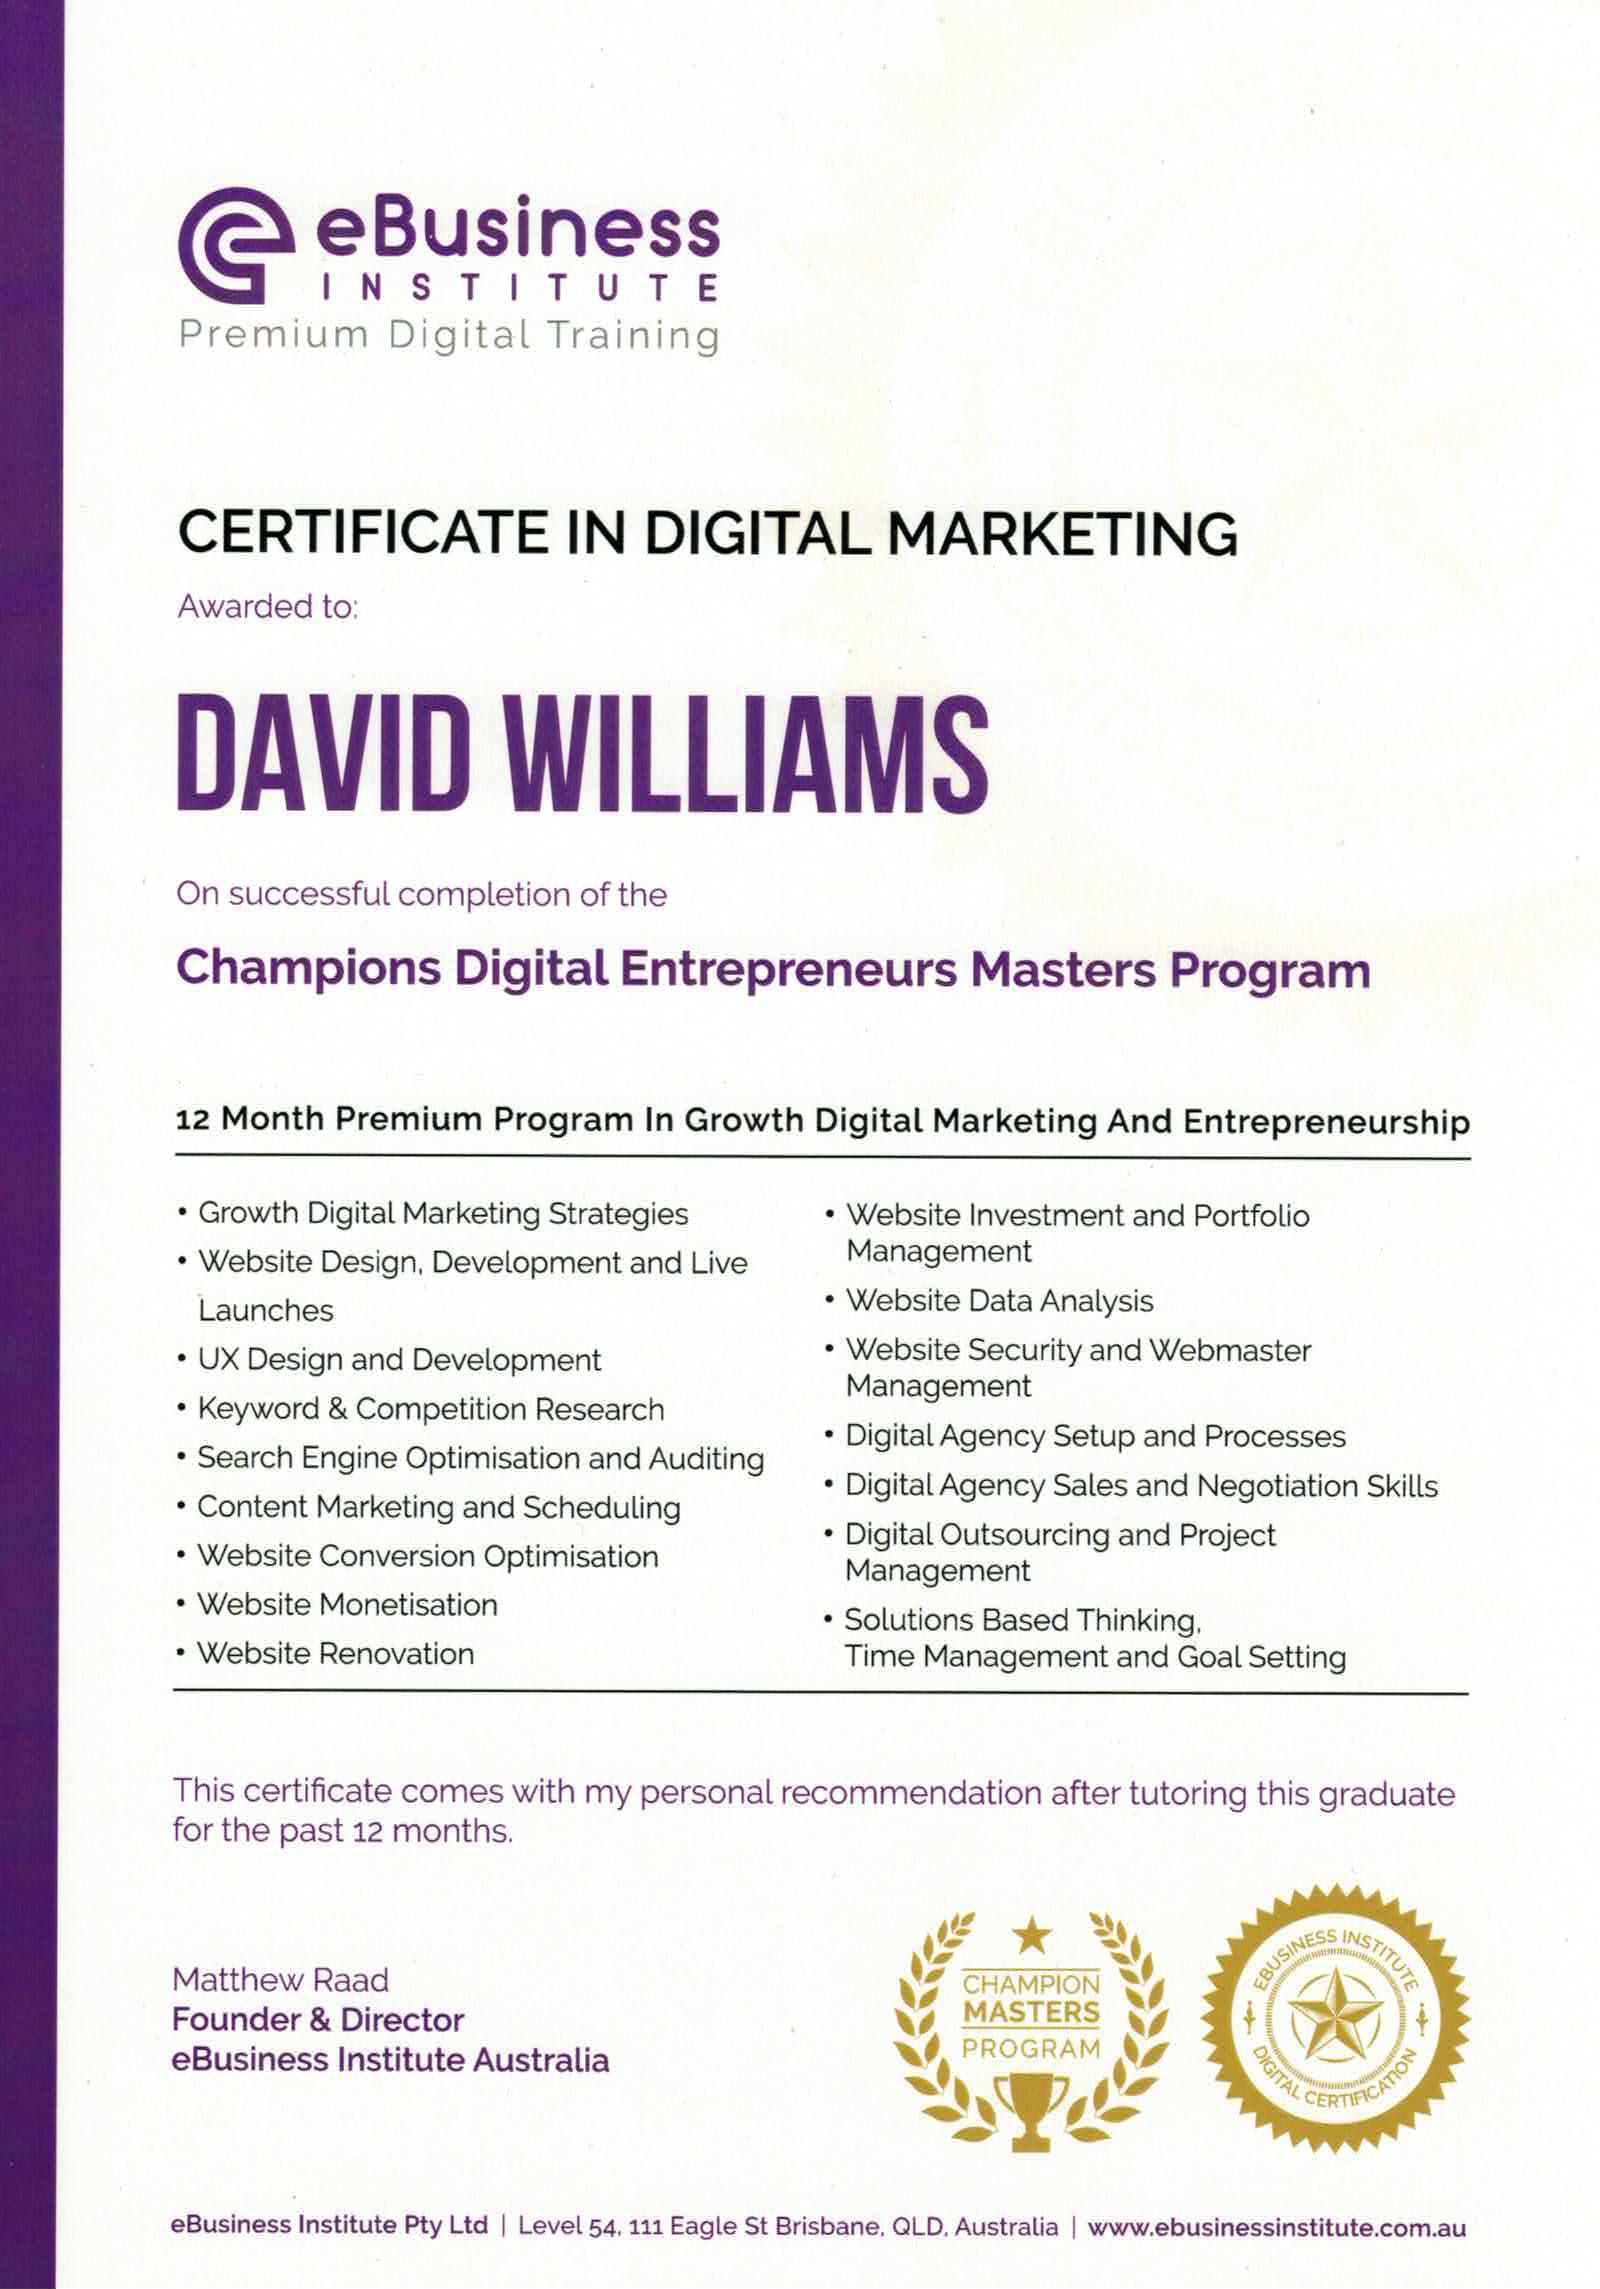 Certificate in Digital Marketing - David Williams